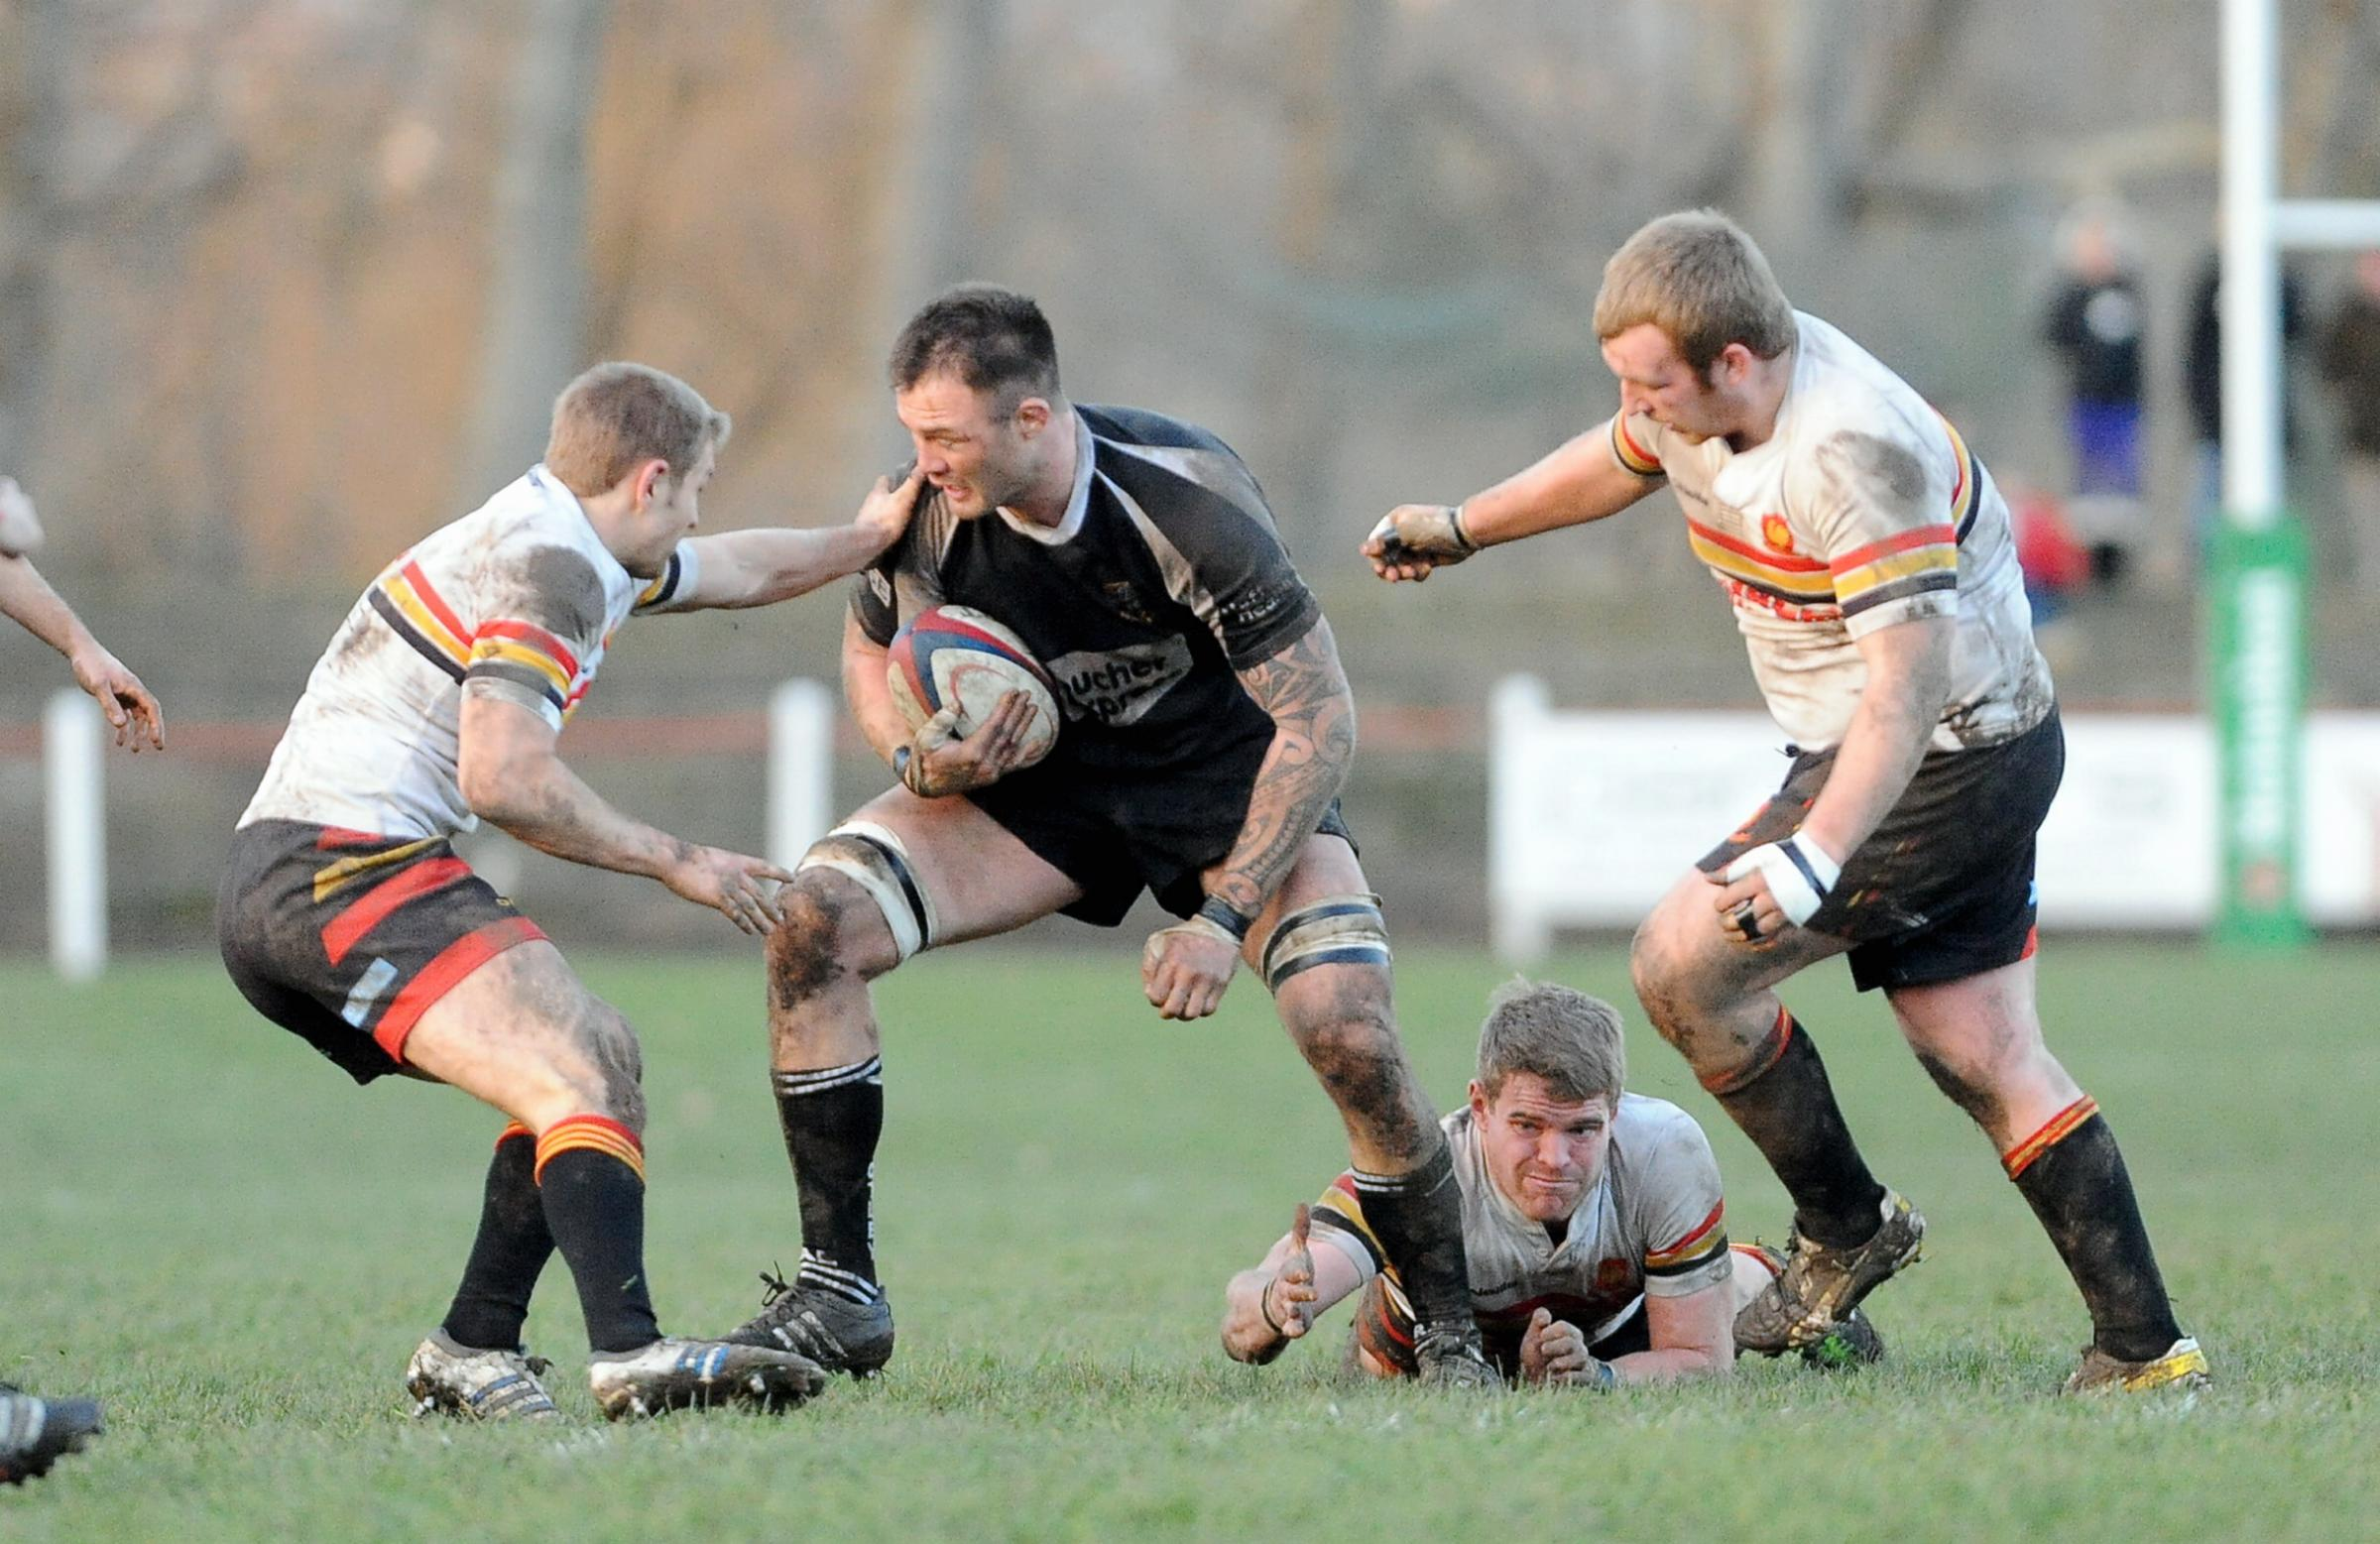 Otley's Simon Willet could be out for the season with a torn bicep